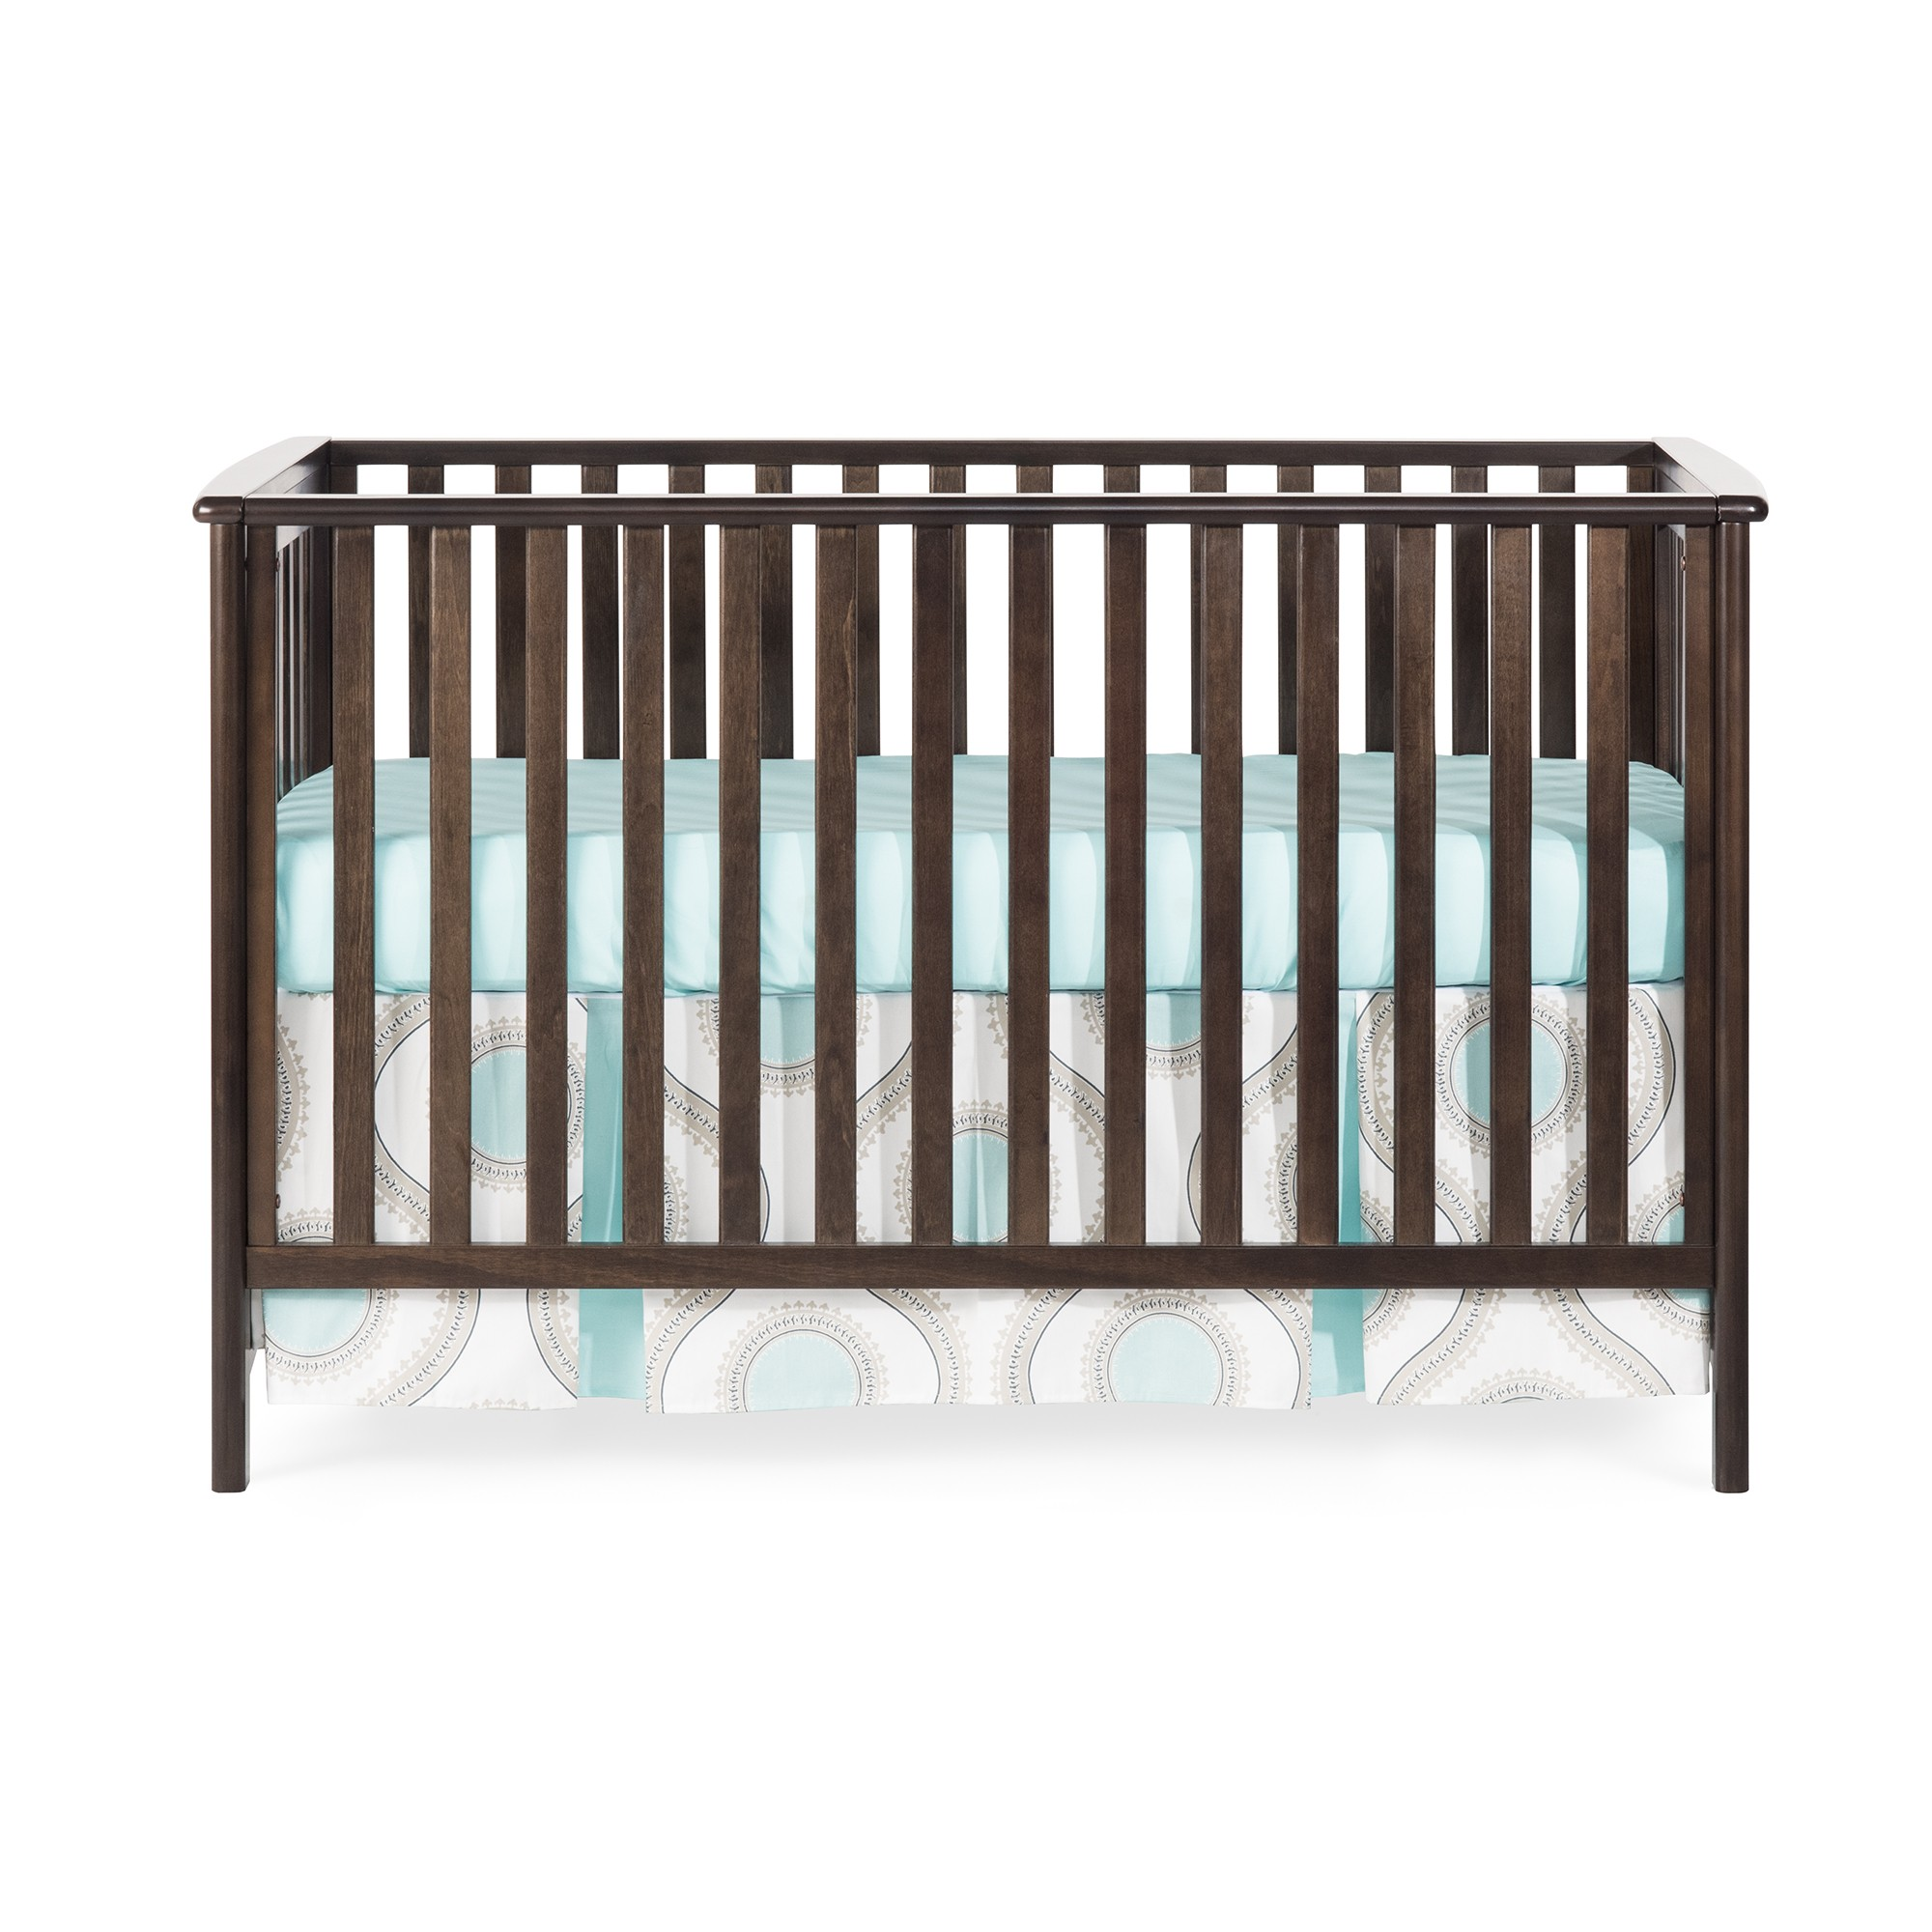 Crib heights for babies - 12